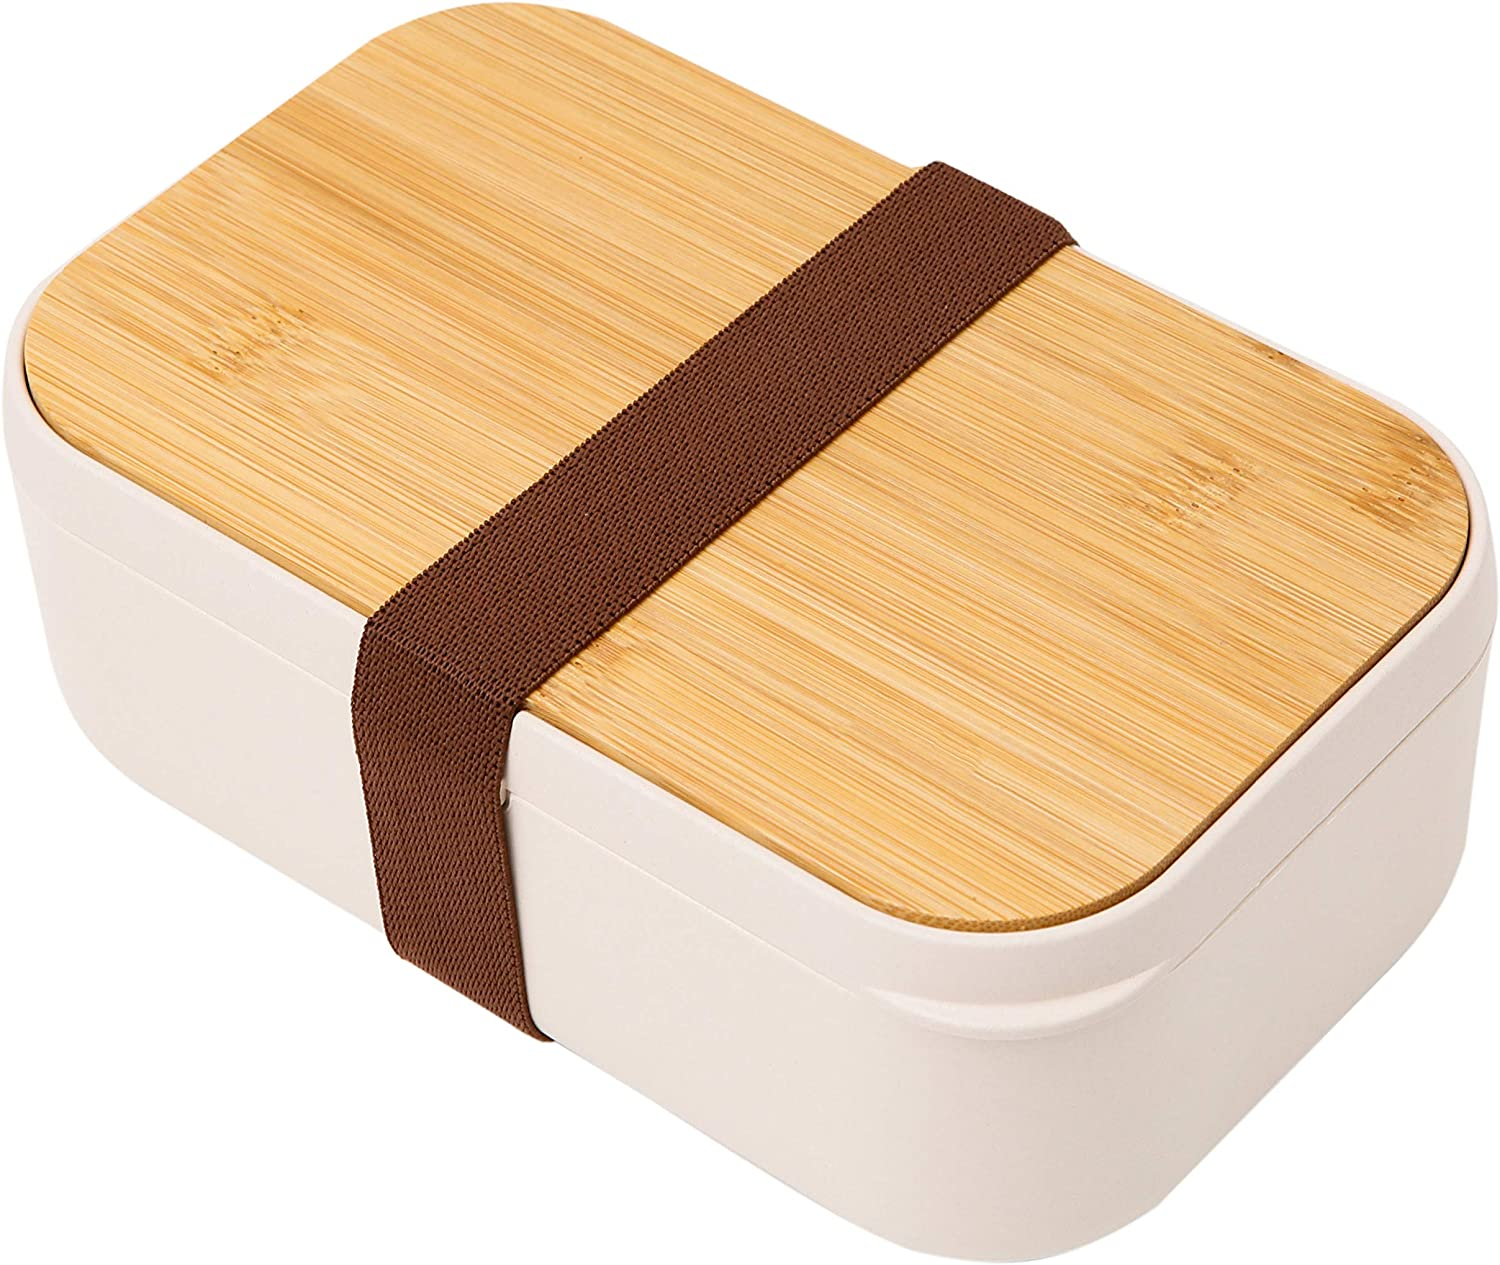 INVVNI Bamboo Bento Box For Adults Kids Japanese Bamboo Lunch Container - BPA Free - with Divider - Leak-Proof